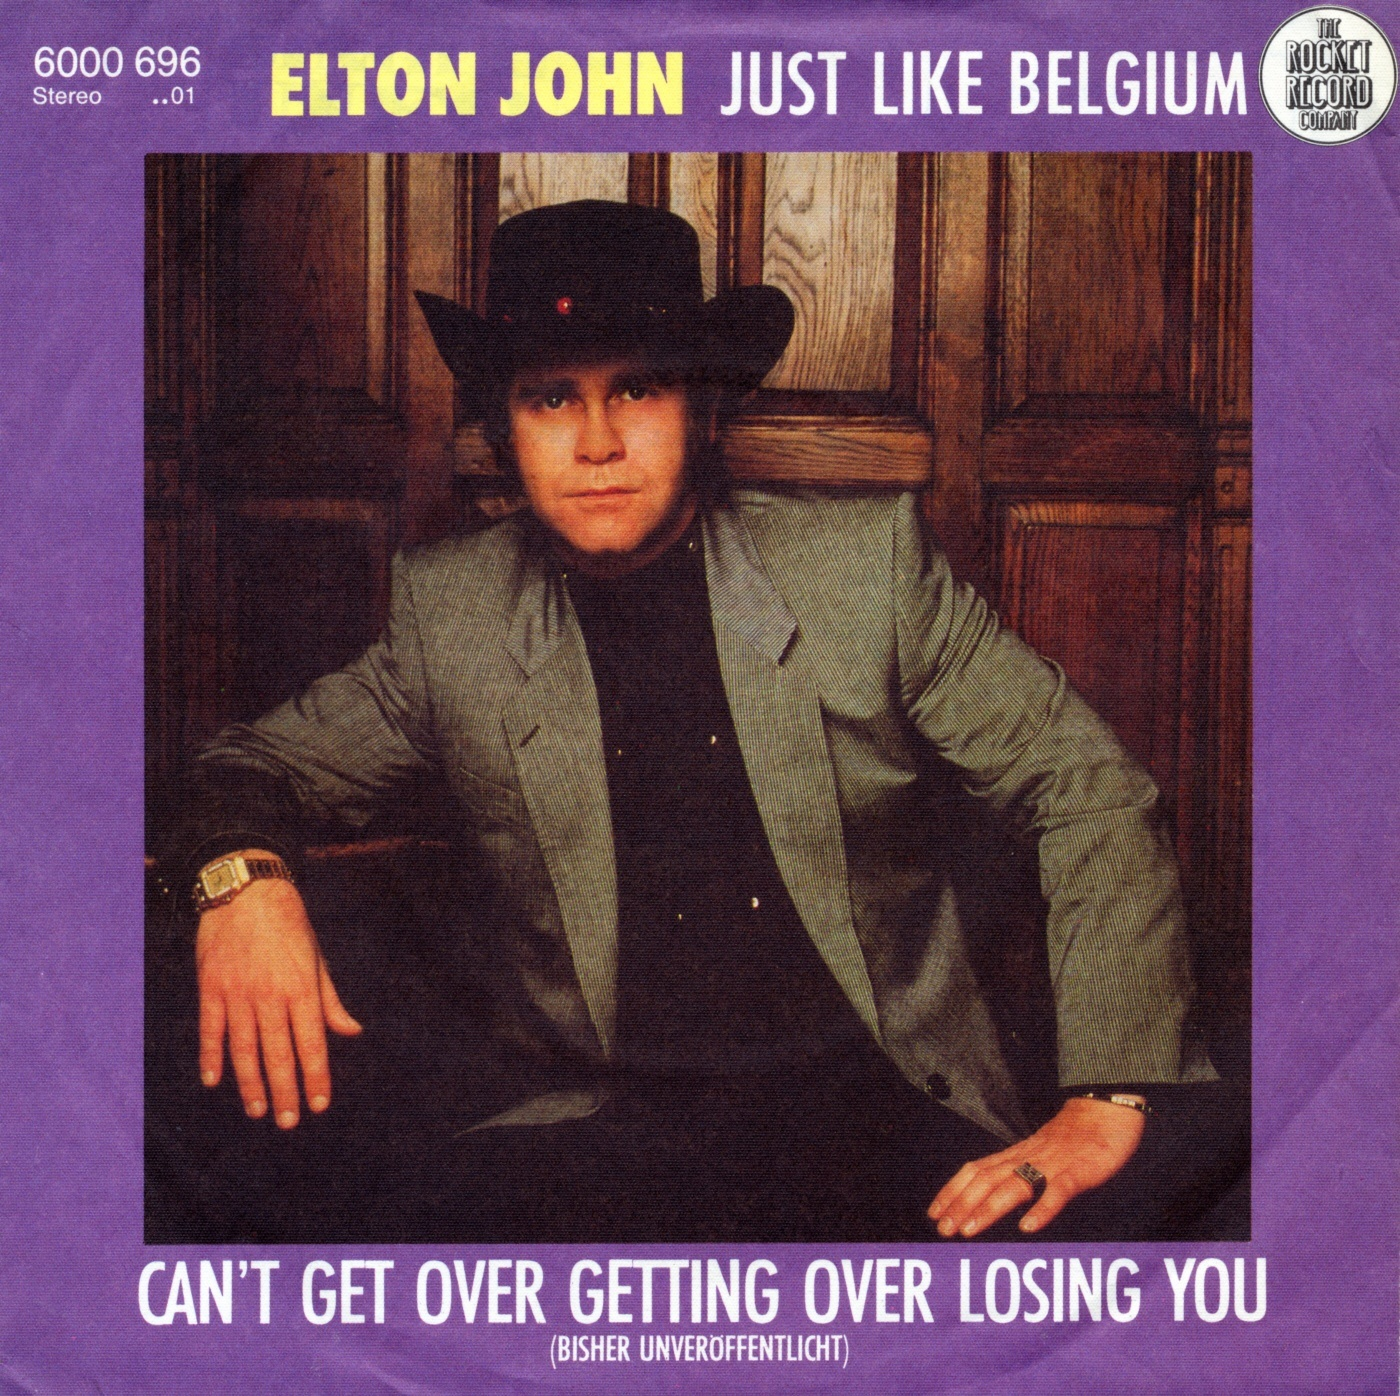 Just like Belgium (Foto: Elton John)